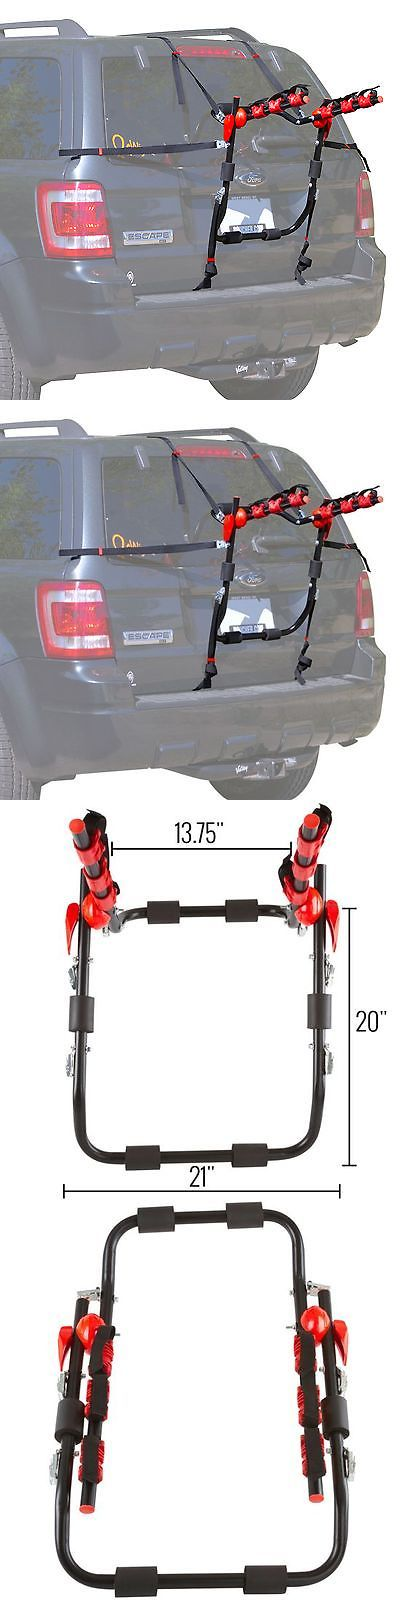 Car and Truck Racks 177849: Trunk-Mount 3-Bike Carrier Hatchback Suv Or Car Sport Bicycle Rack -> BUY IT NOW ONLY: $49.99 on eBay!